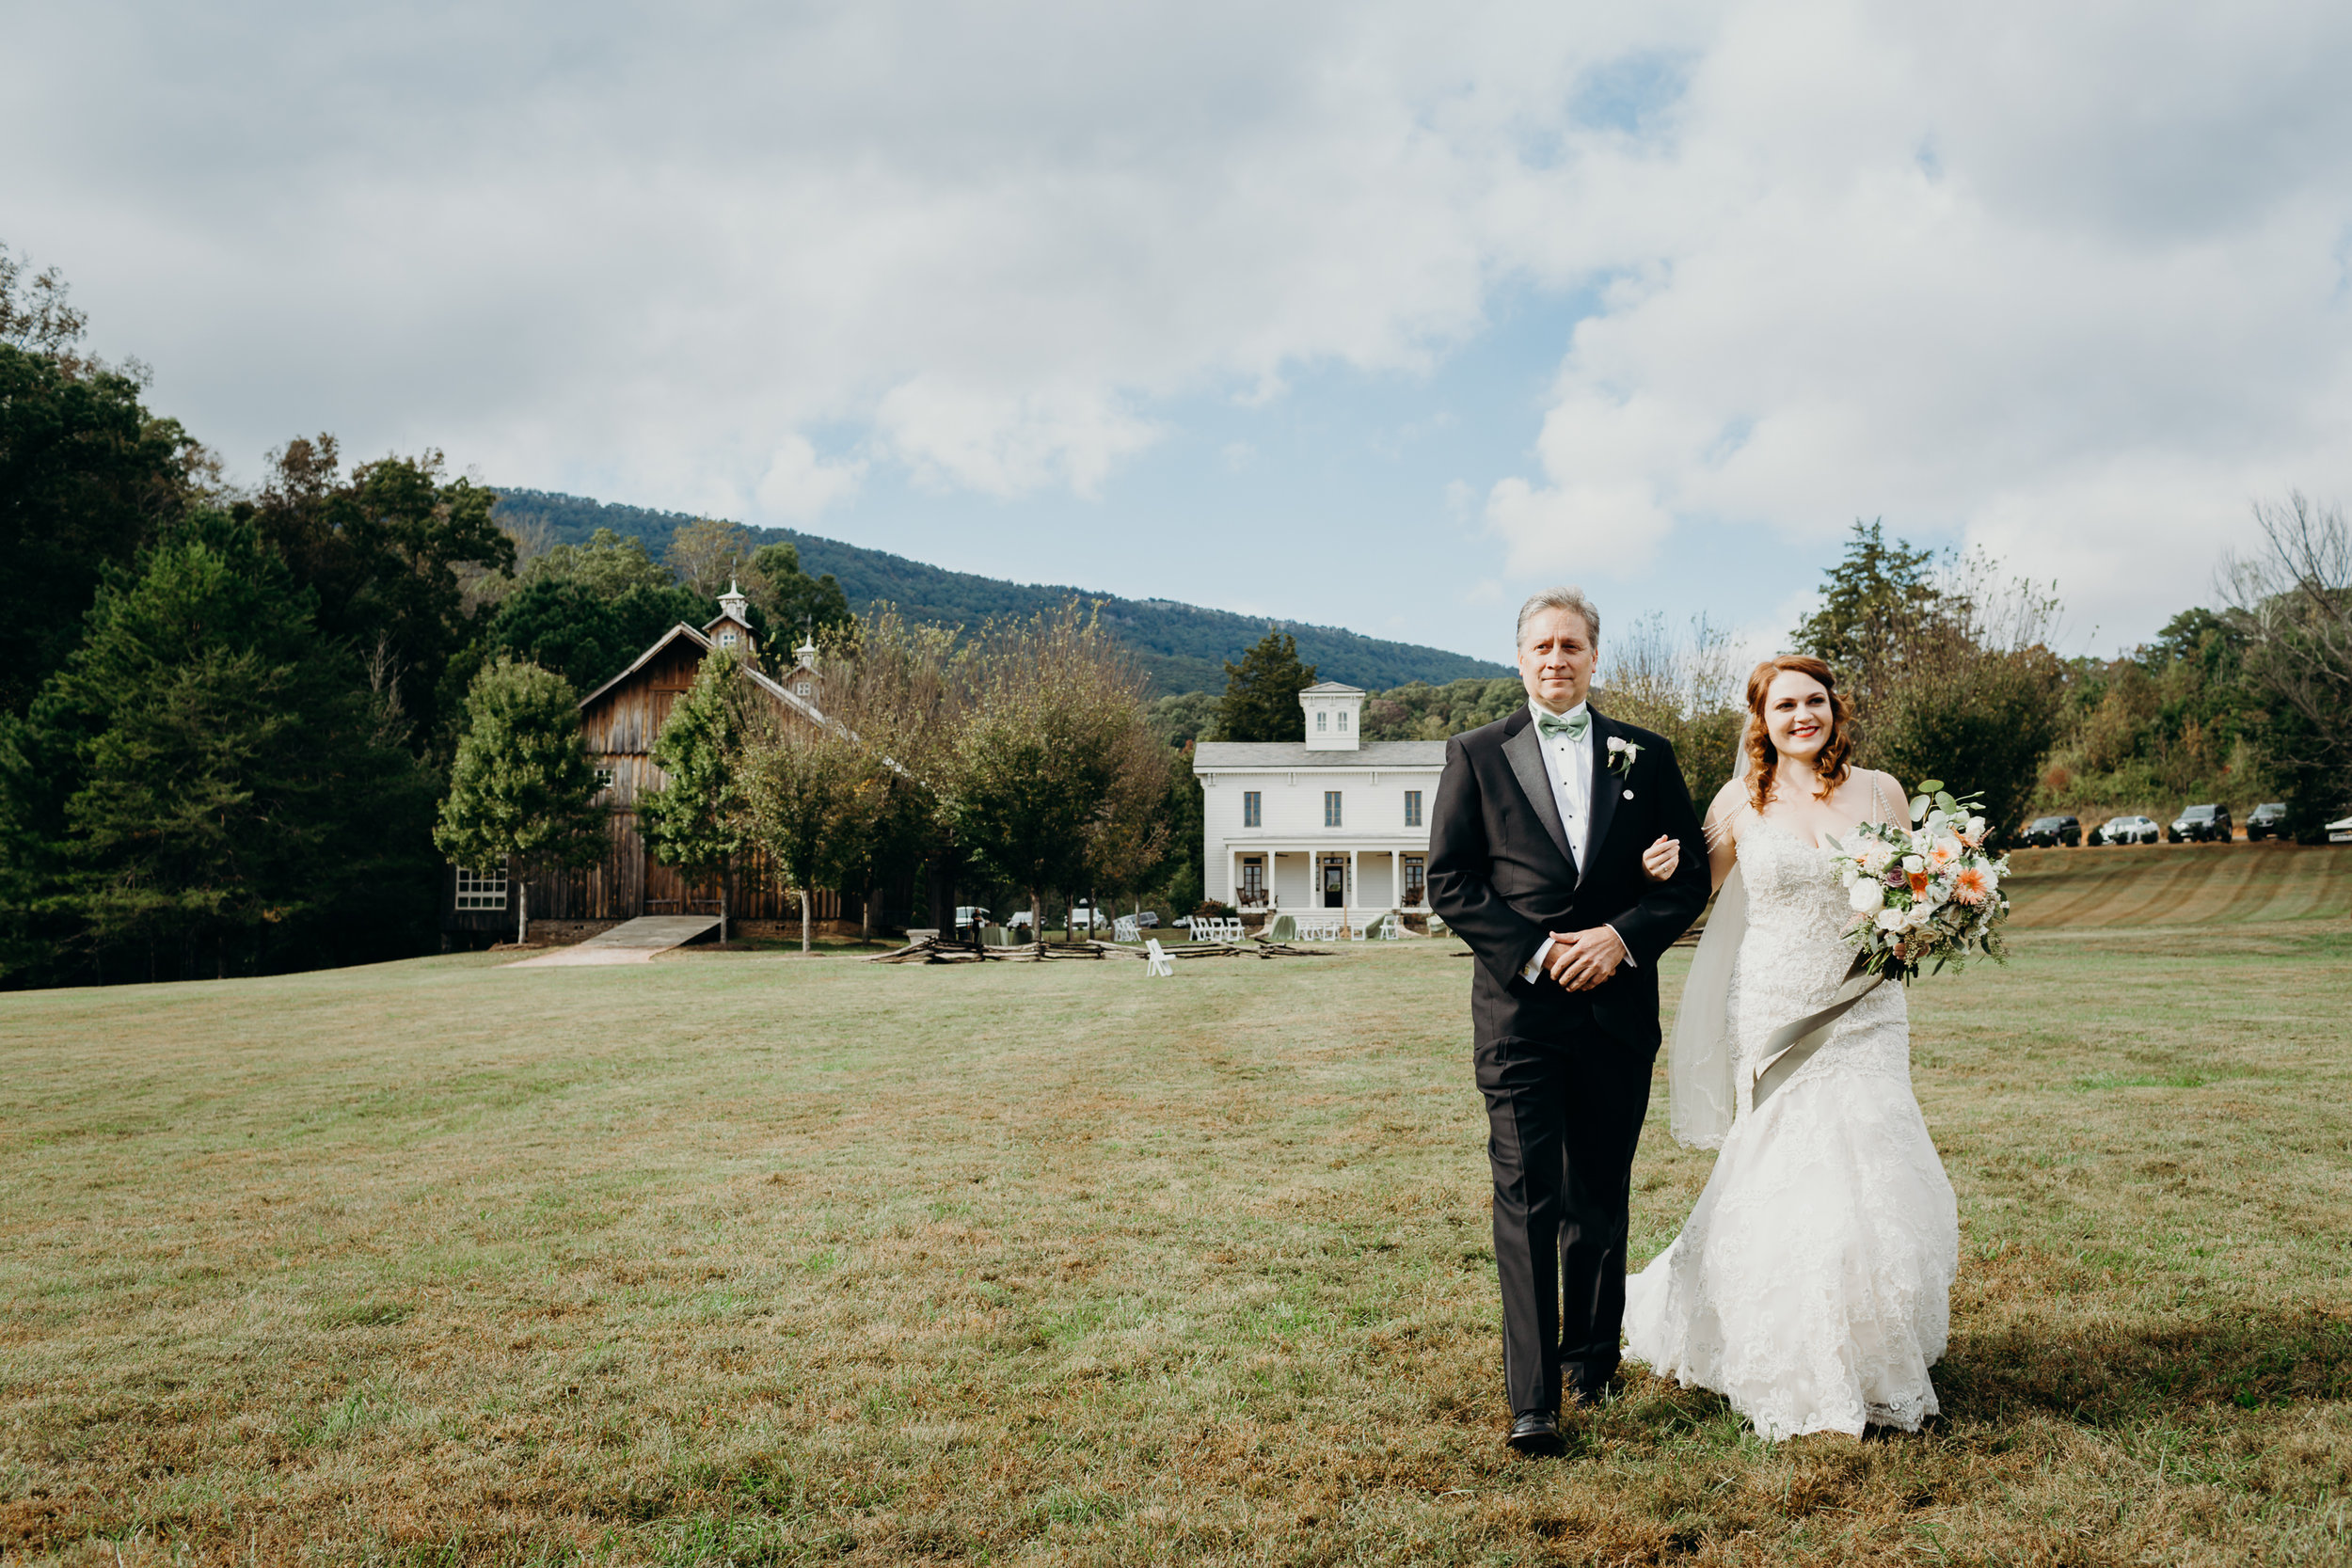 Gianna Keiko Atlanta Chattanooga Destination Wedding Portrait Photographer-47.jpg